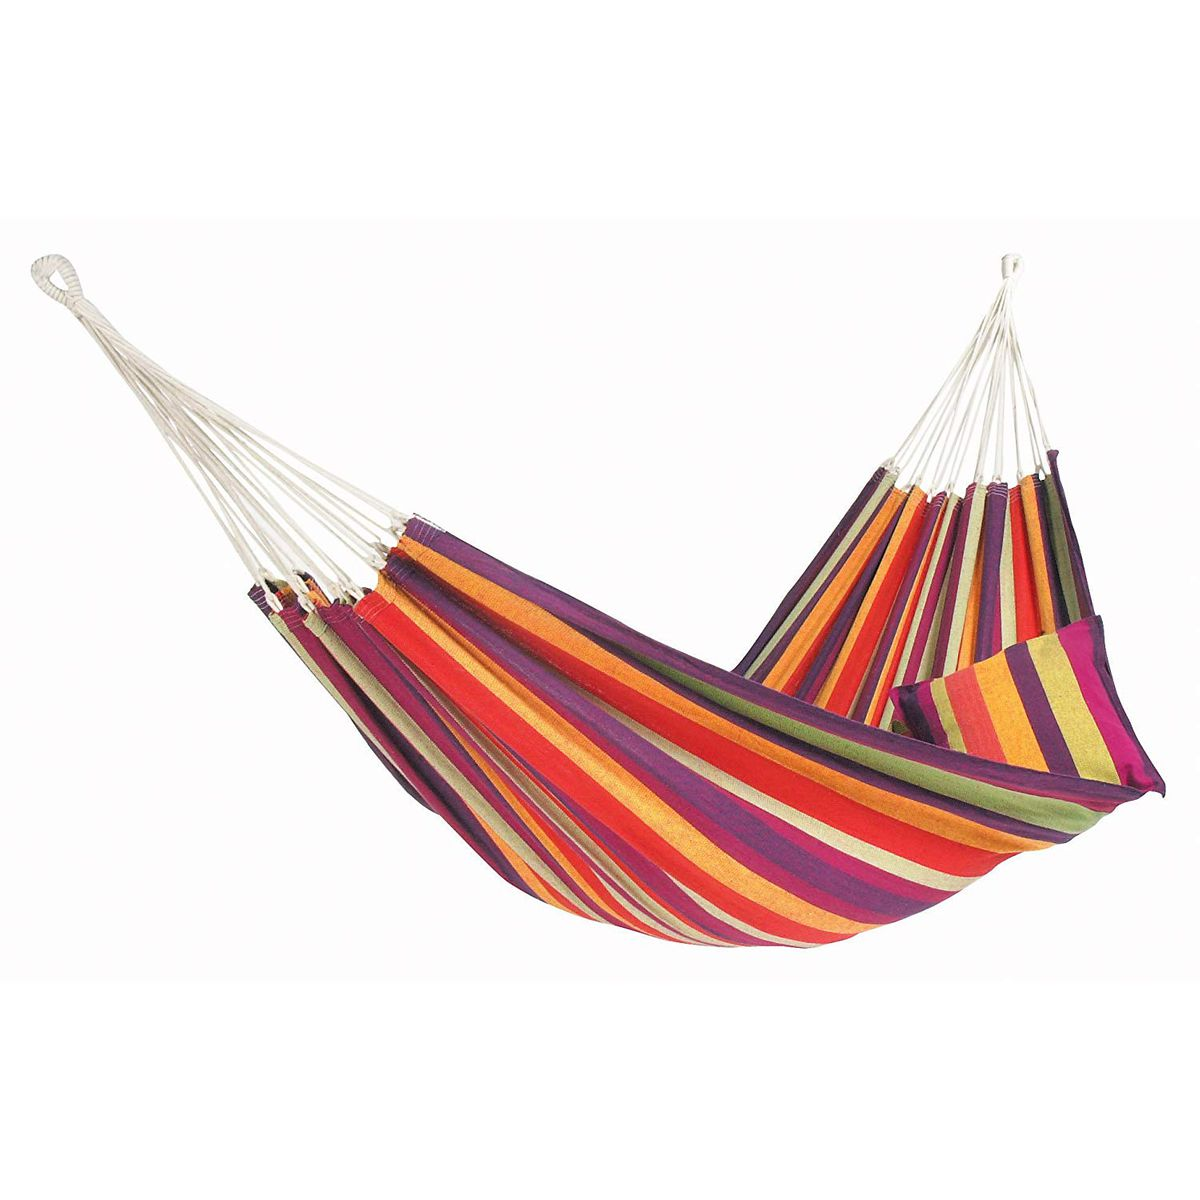 Amazonas Lambada Tropical Hammock - Ruby's Garden Boutique